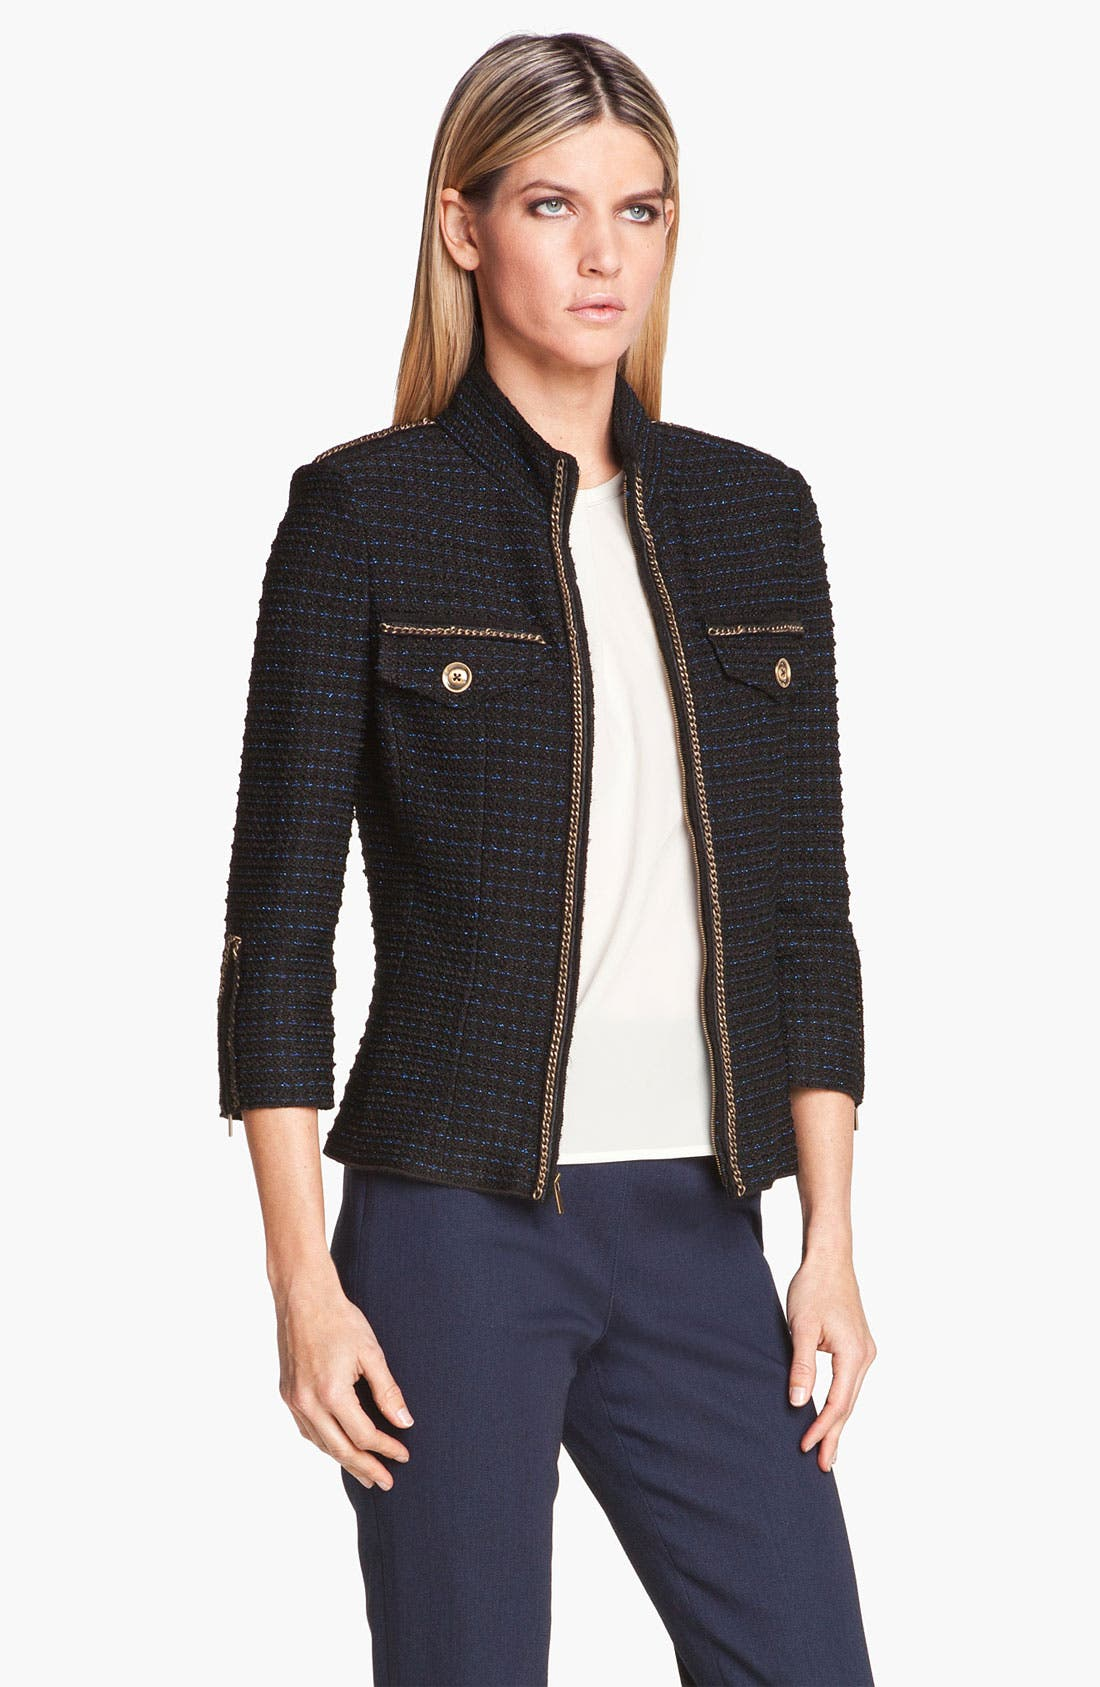 Alternate Image 1 Selected - St. John Collection Military Tweed Knit Jacket